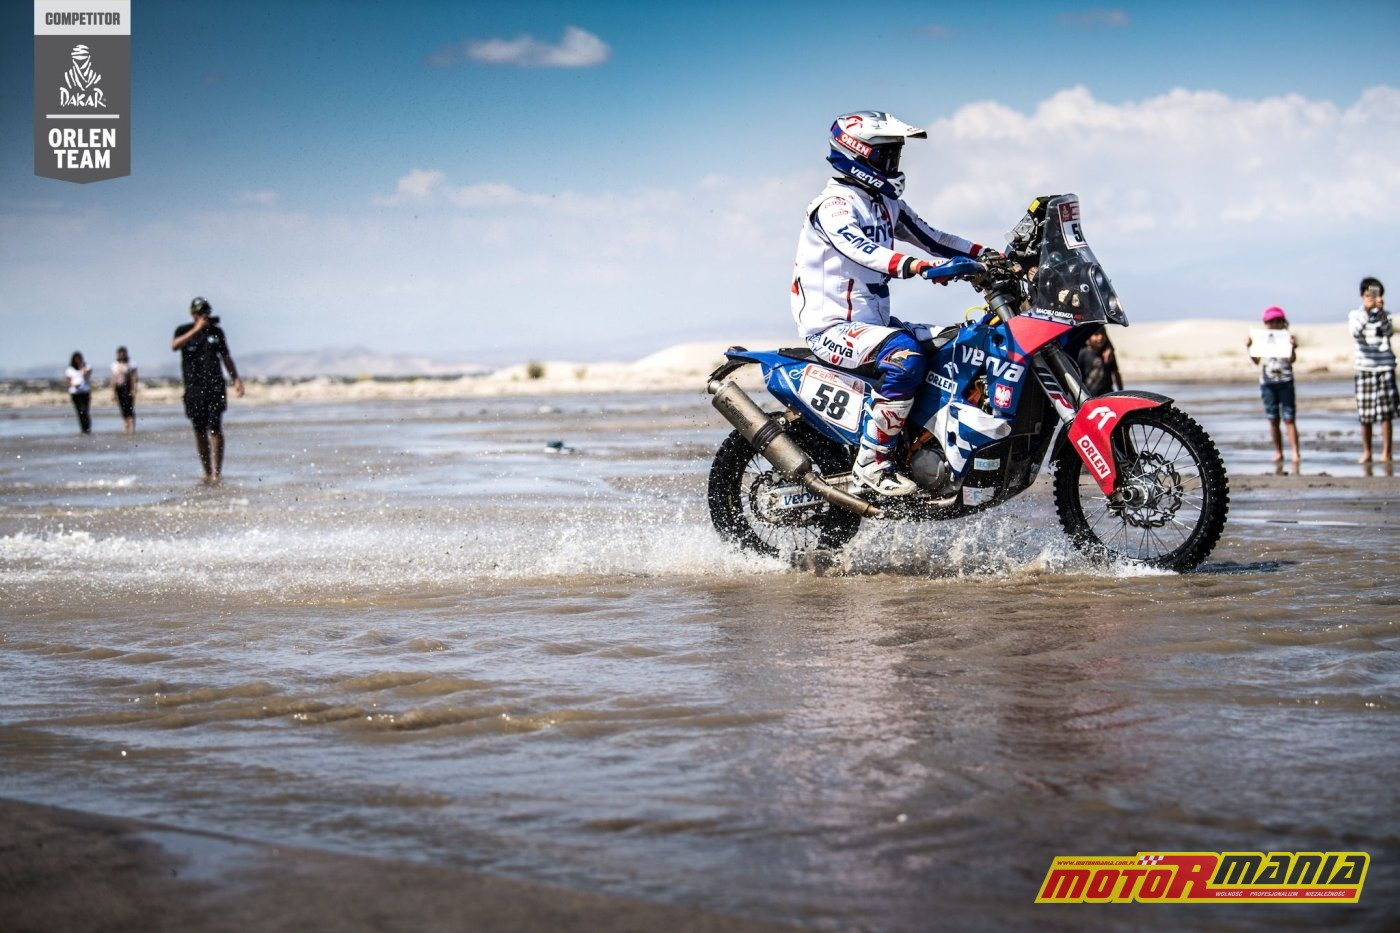 Dakar2018 D11 ORLEN_Team Giemza MCH_Photo_2_OT